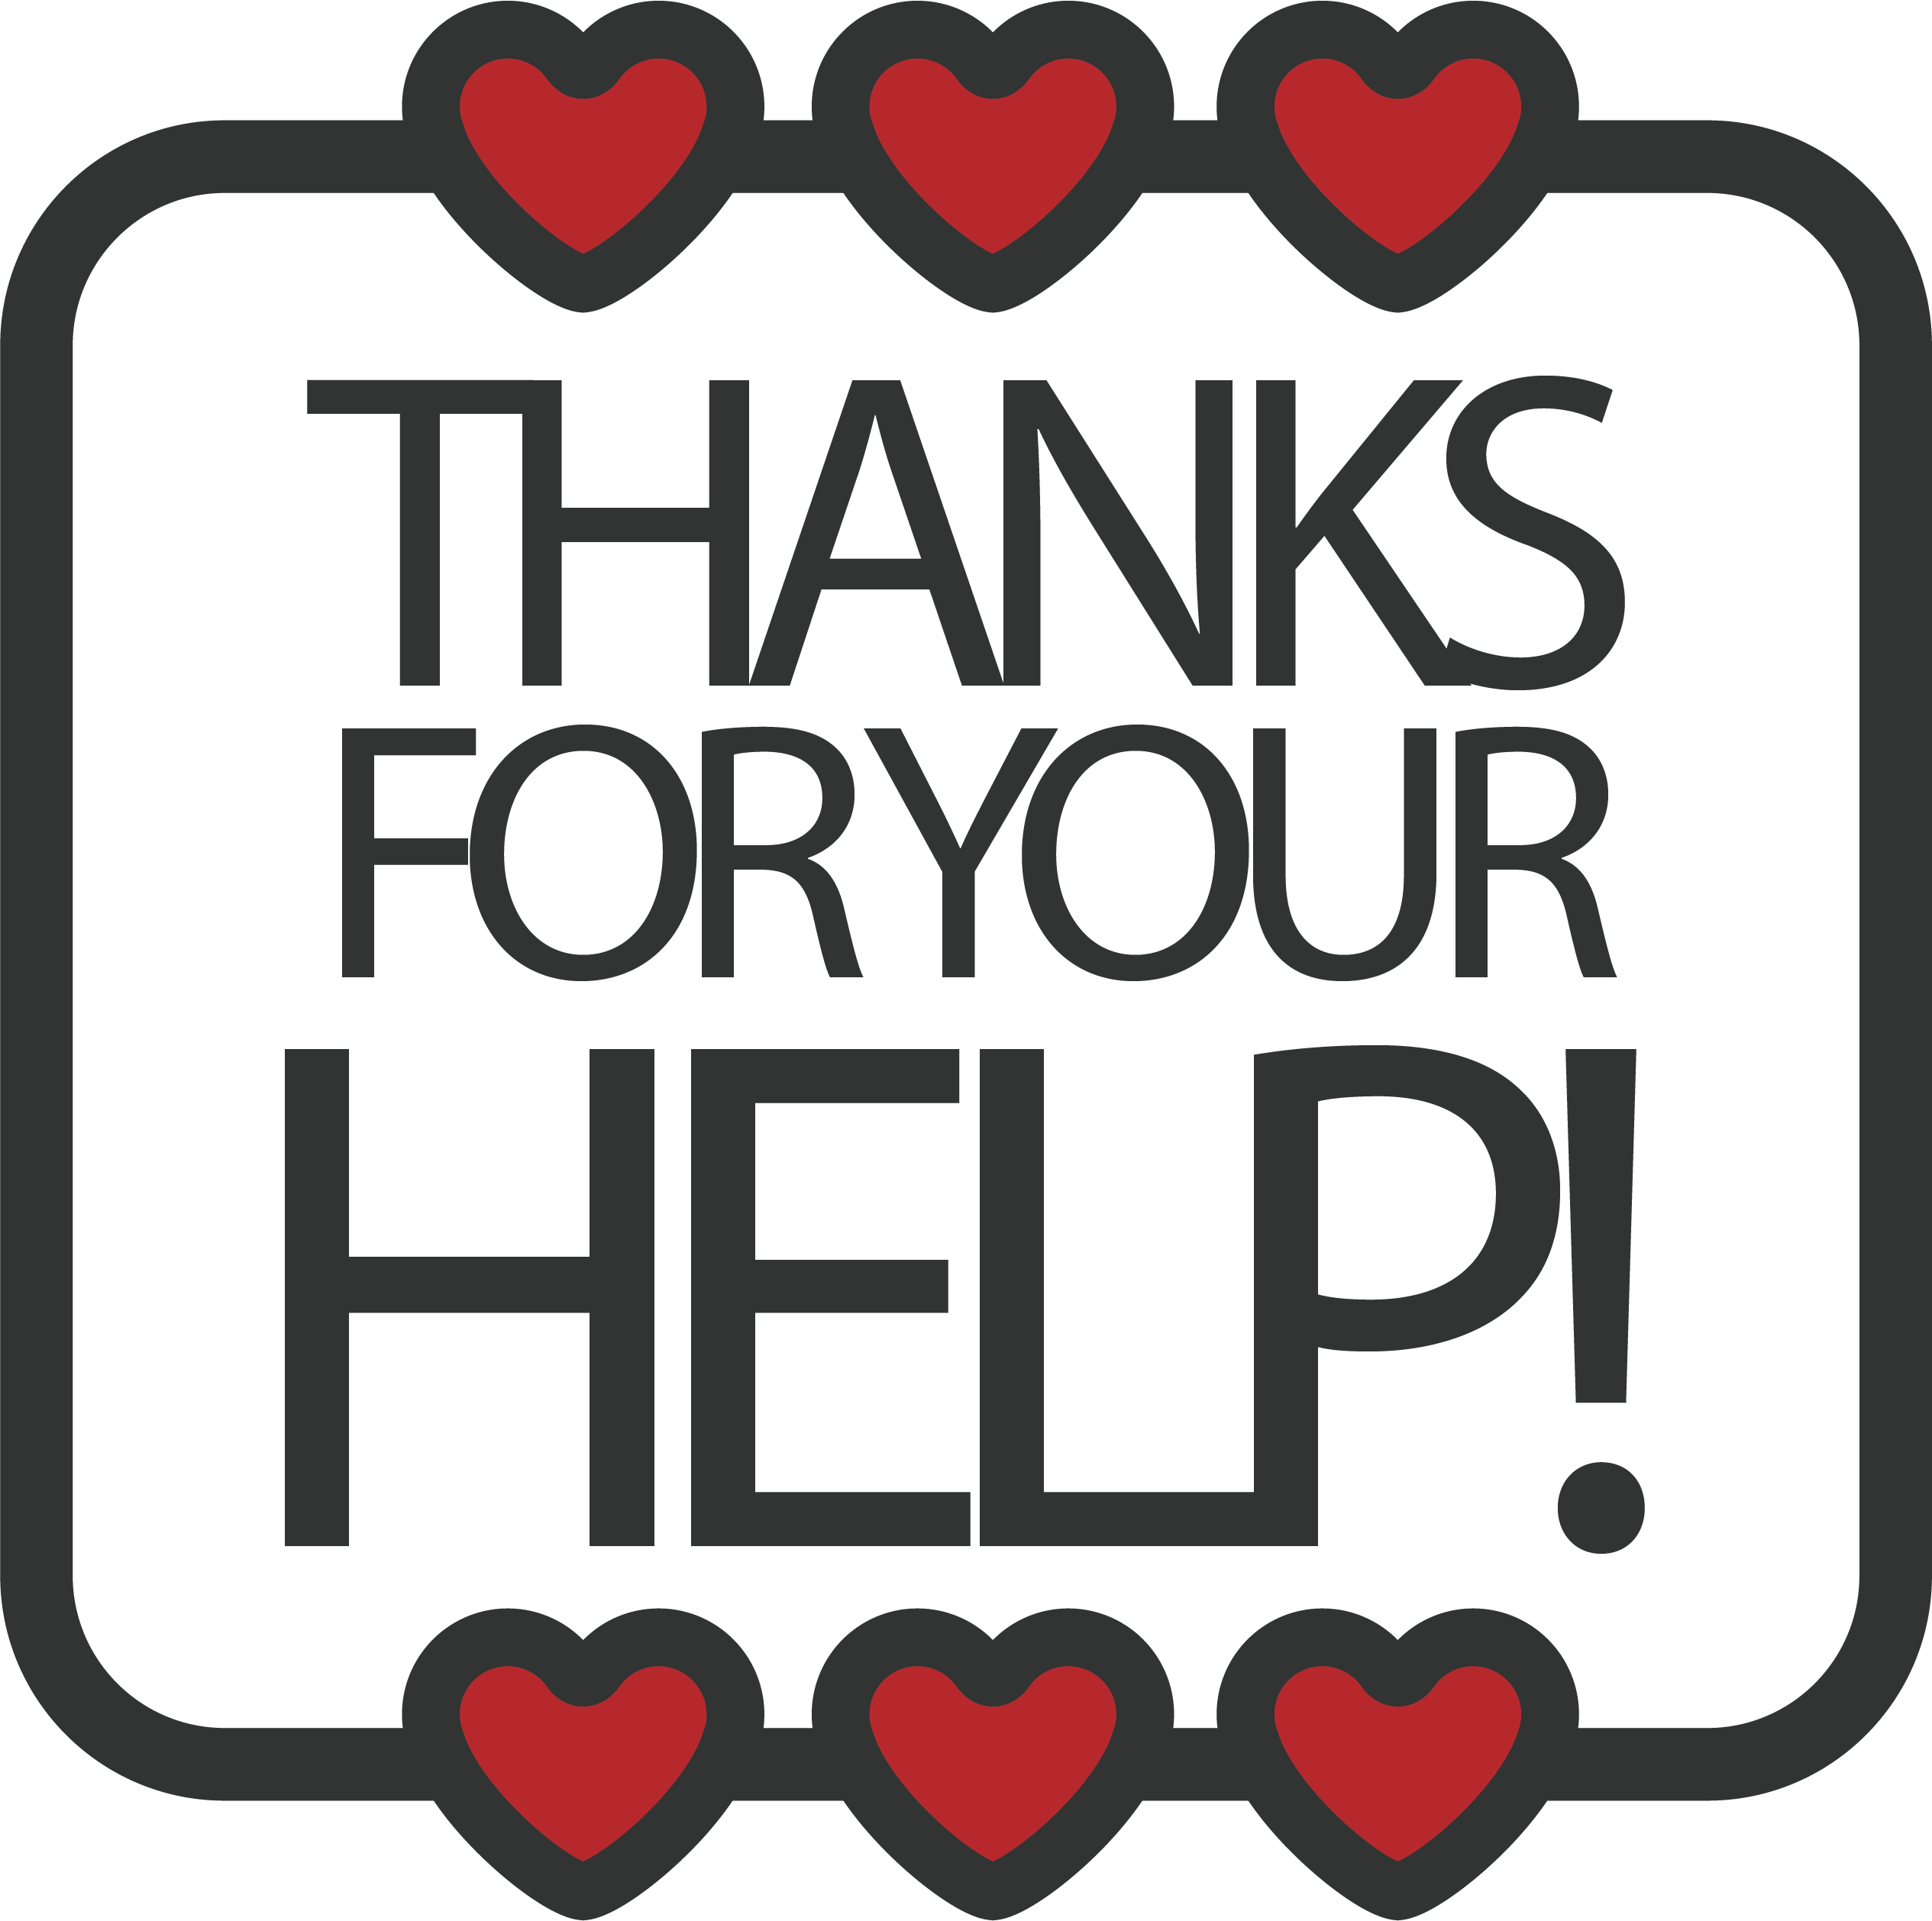 Thanks clipart thank you card. Red clip art love